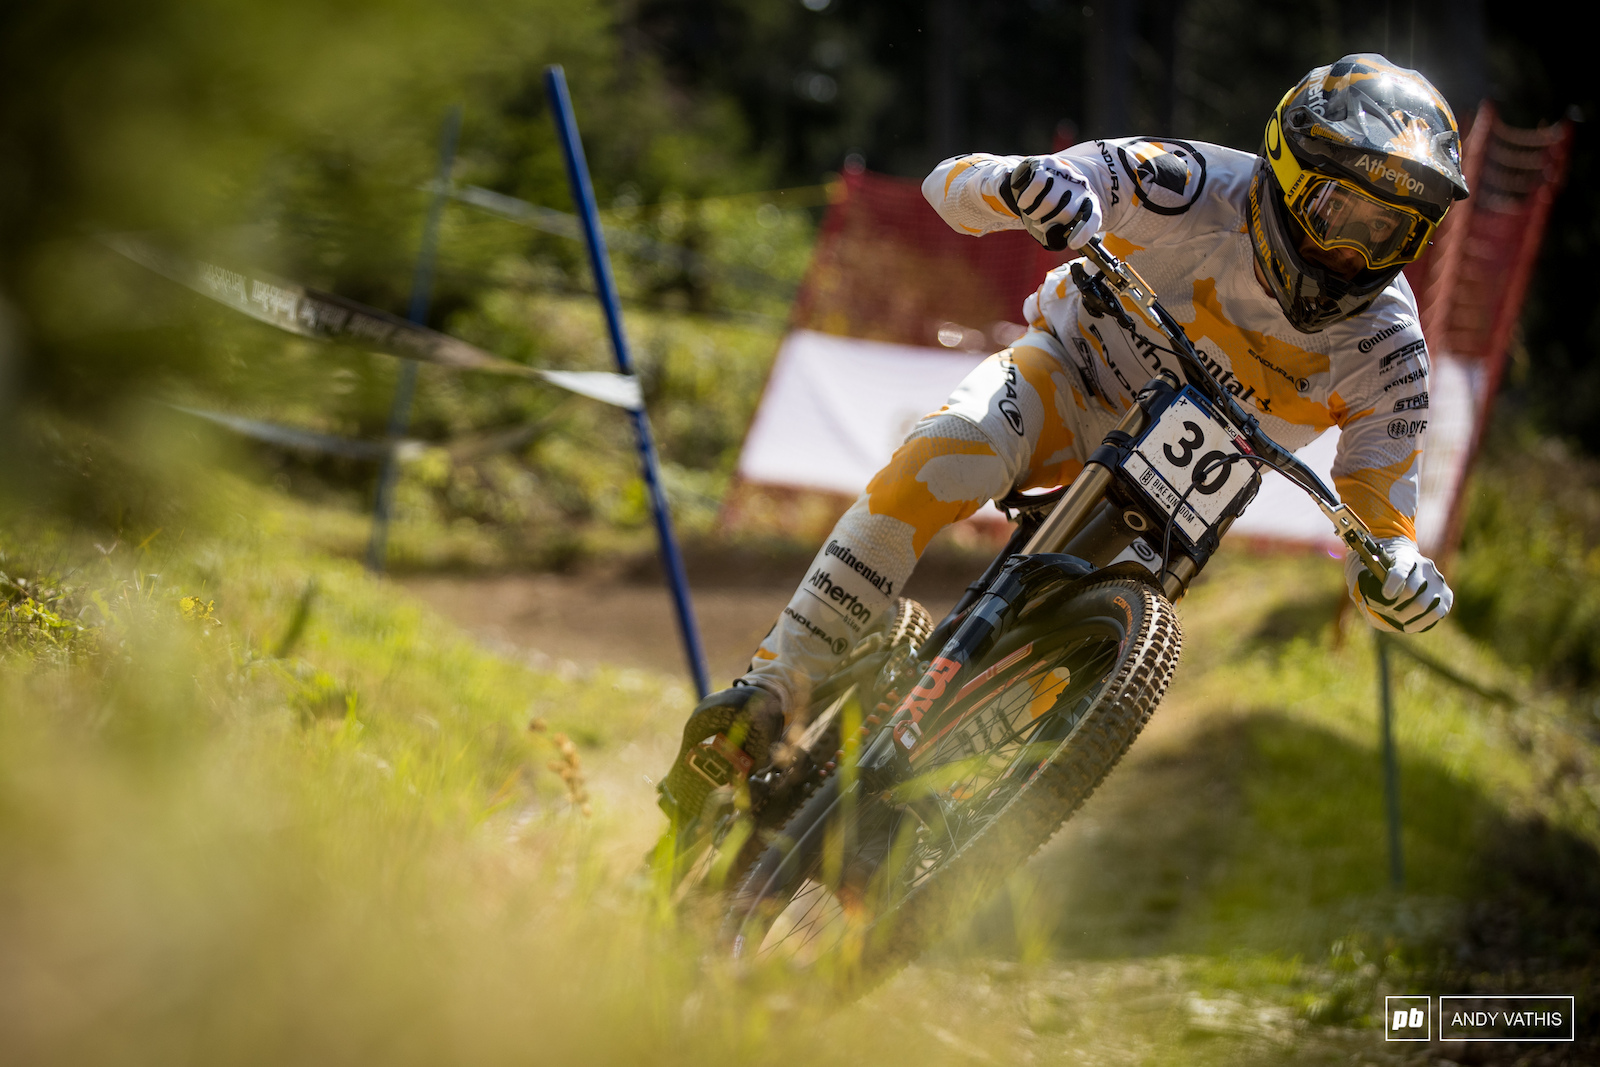 Andreas Kolb into 15th. He had the hot seat for a while too.